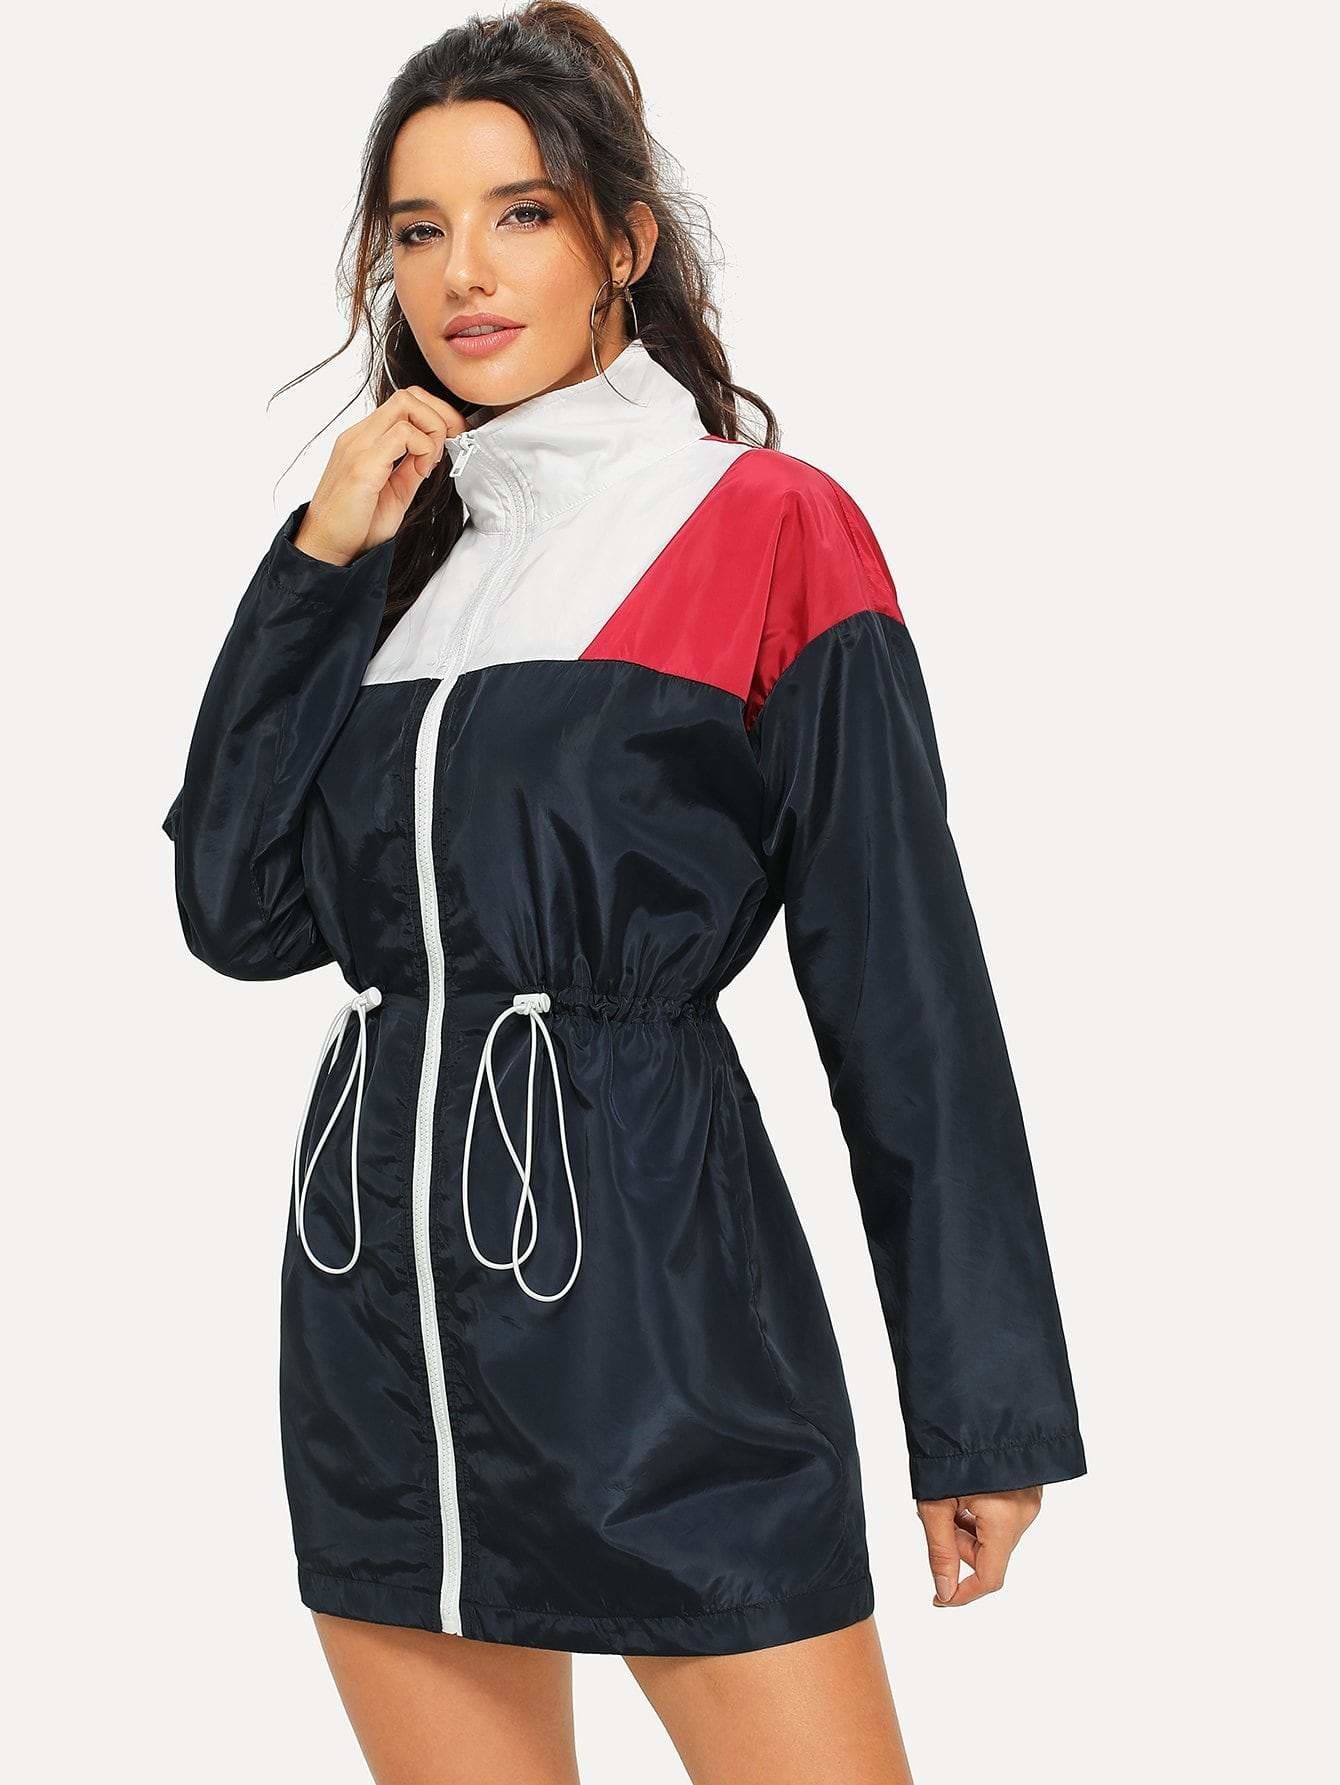 Zip Front Color Block Drawstring Jacket - Gym Tops